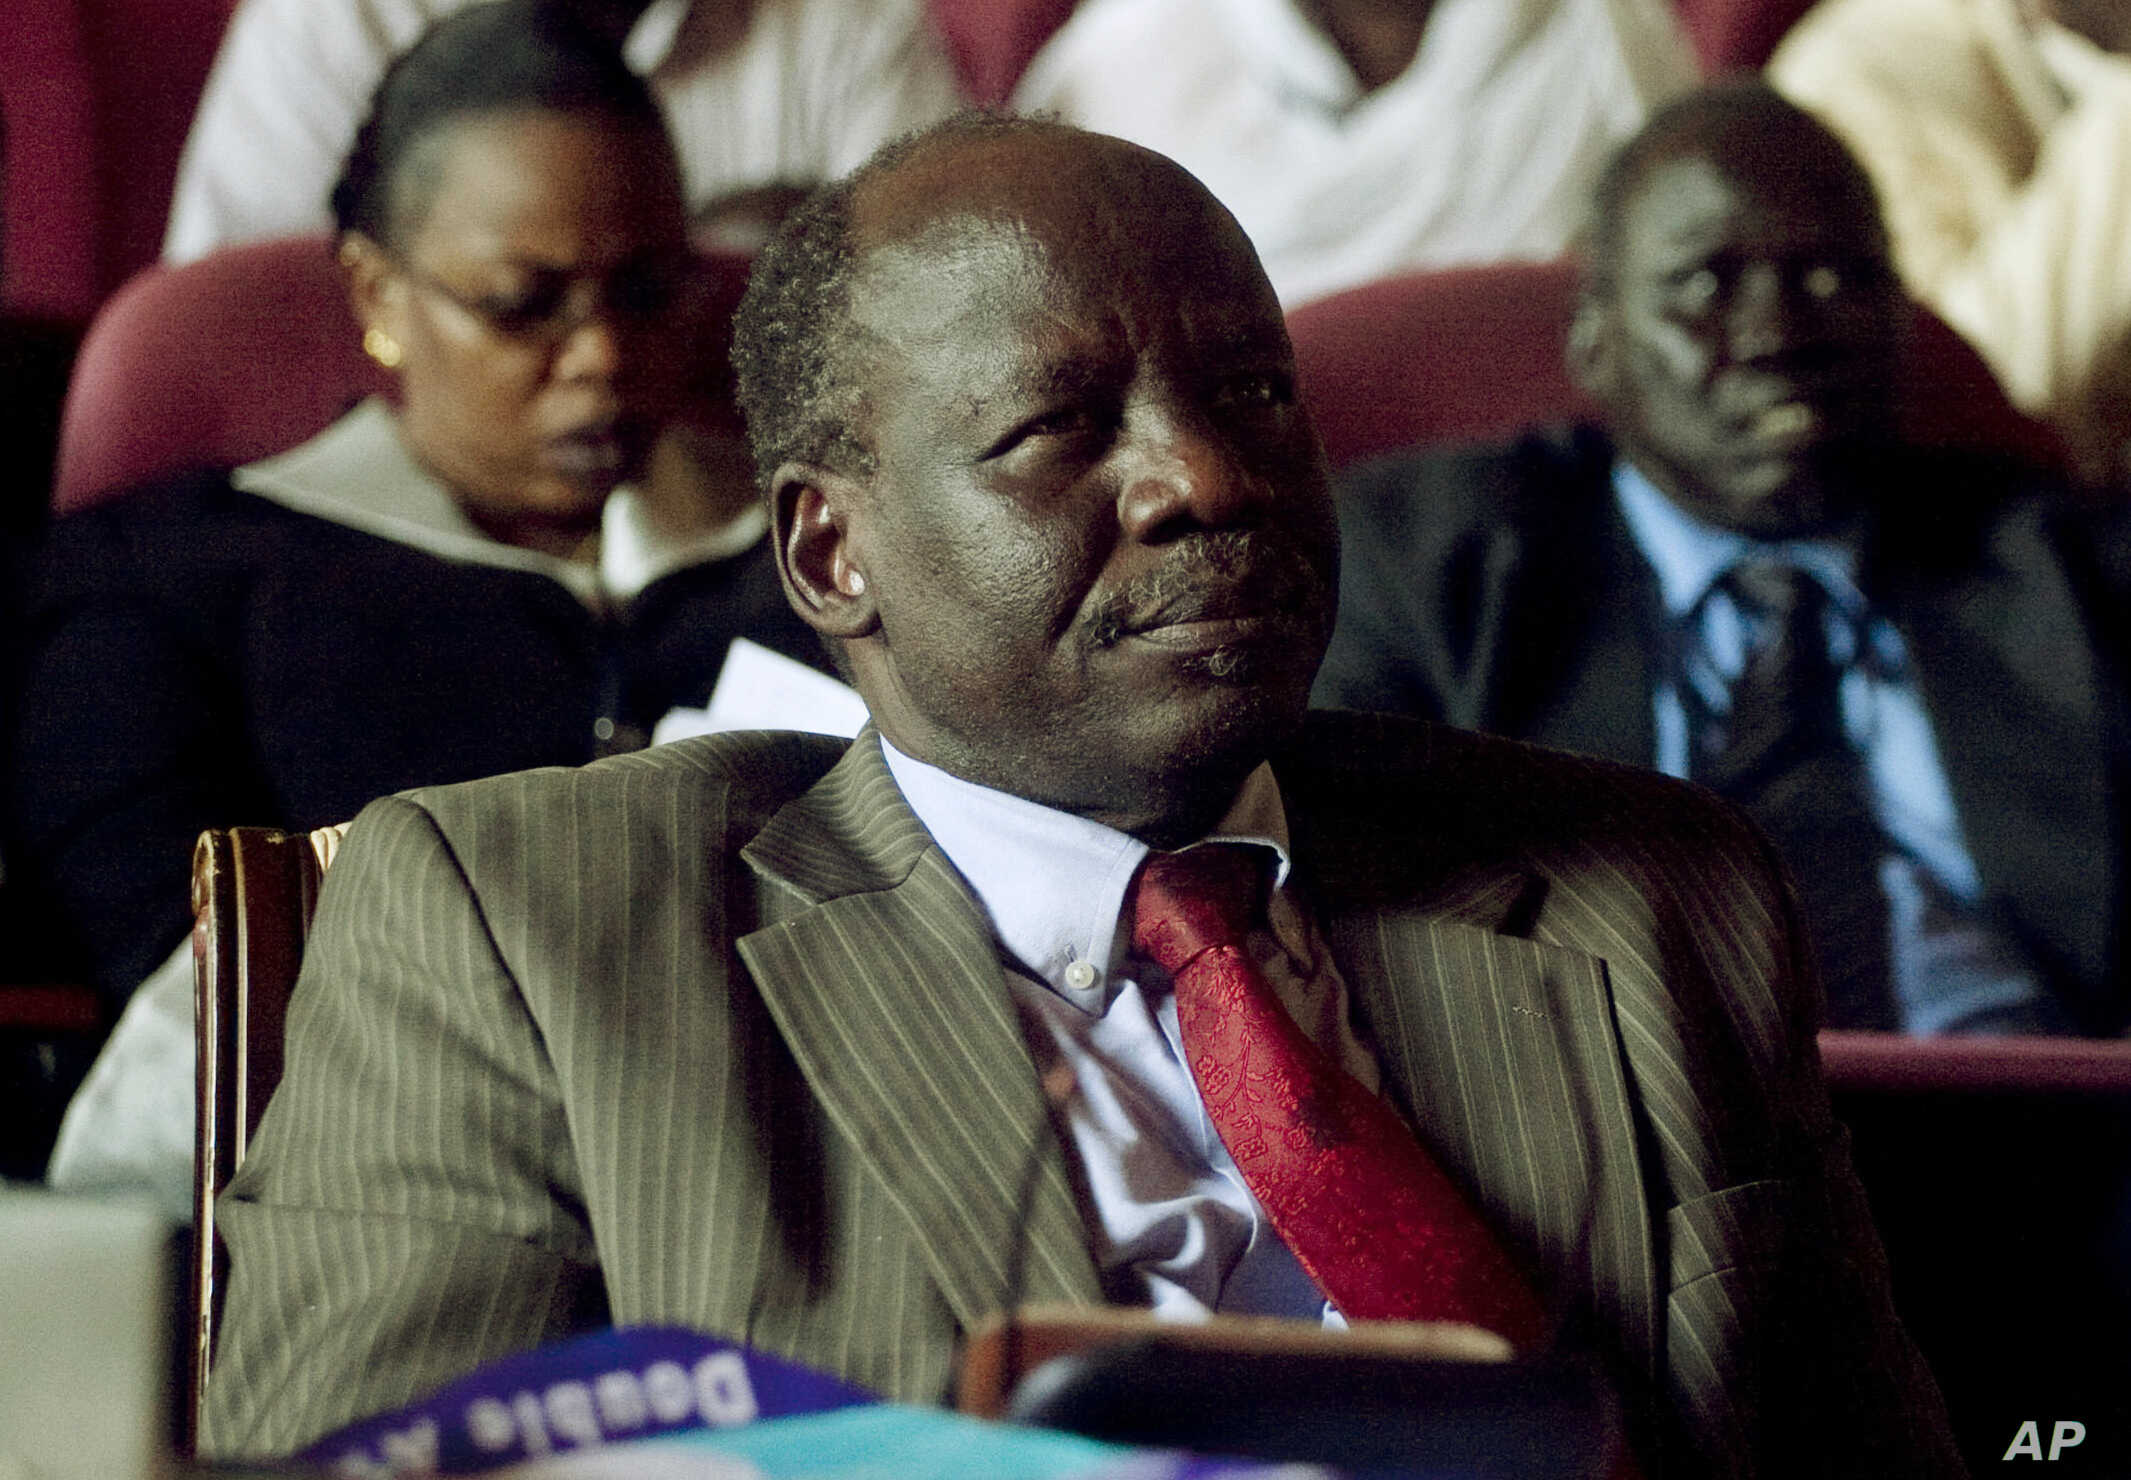 South Sudan Politics: South Sudan's top opposition figure Lam Akol, seen in this 2010 file photo, has quit the country's unity government and declared the death of the peace deal aimed at ending the country's civil war